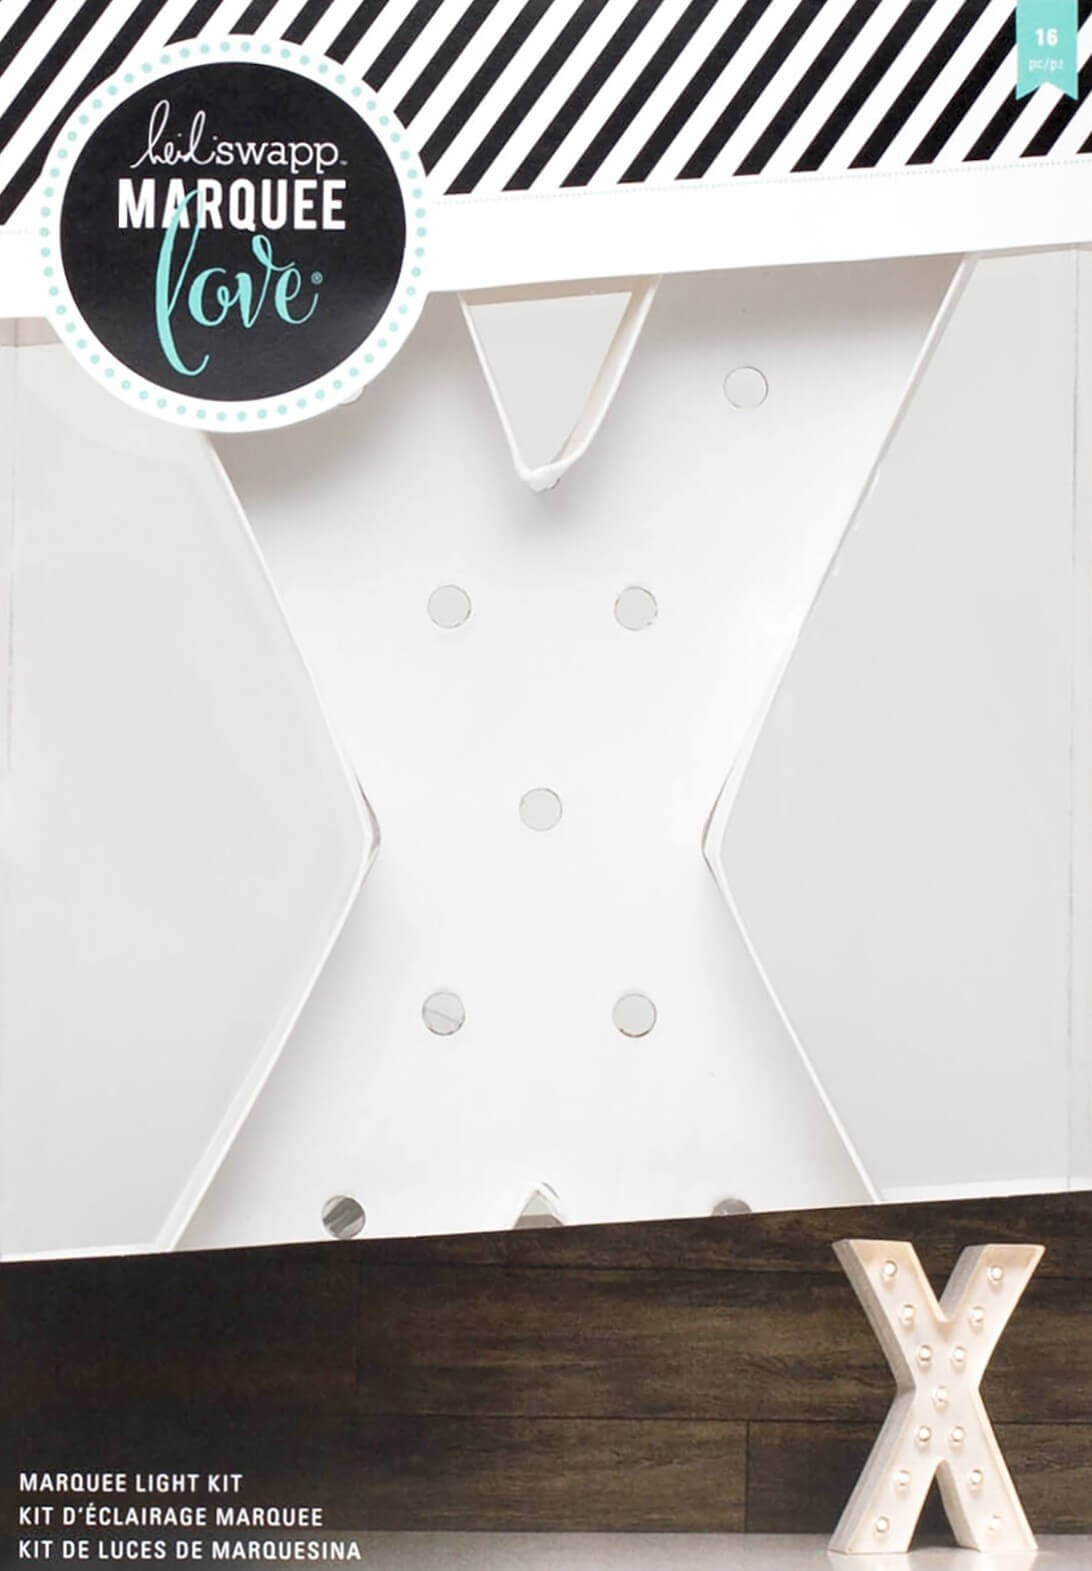 "Lettre Marquee Love 12"" X"